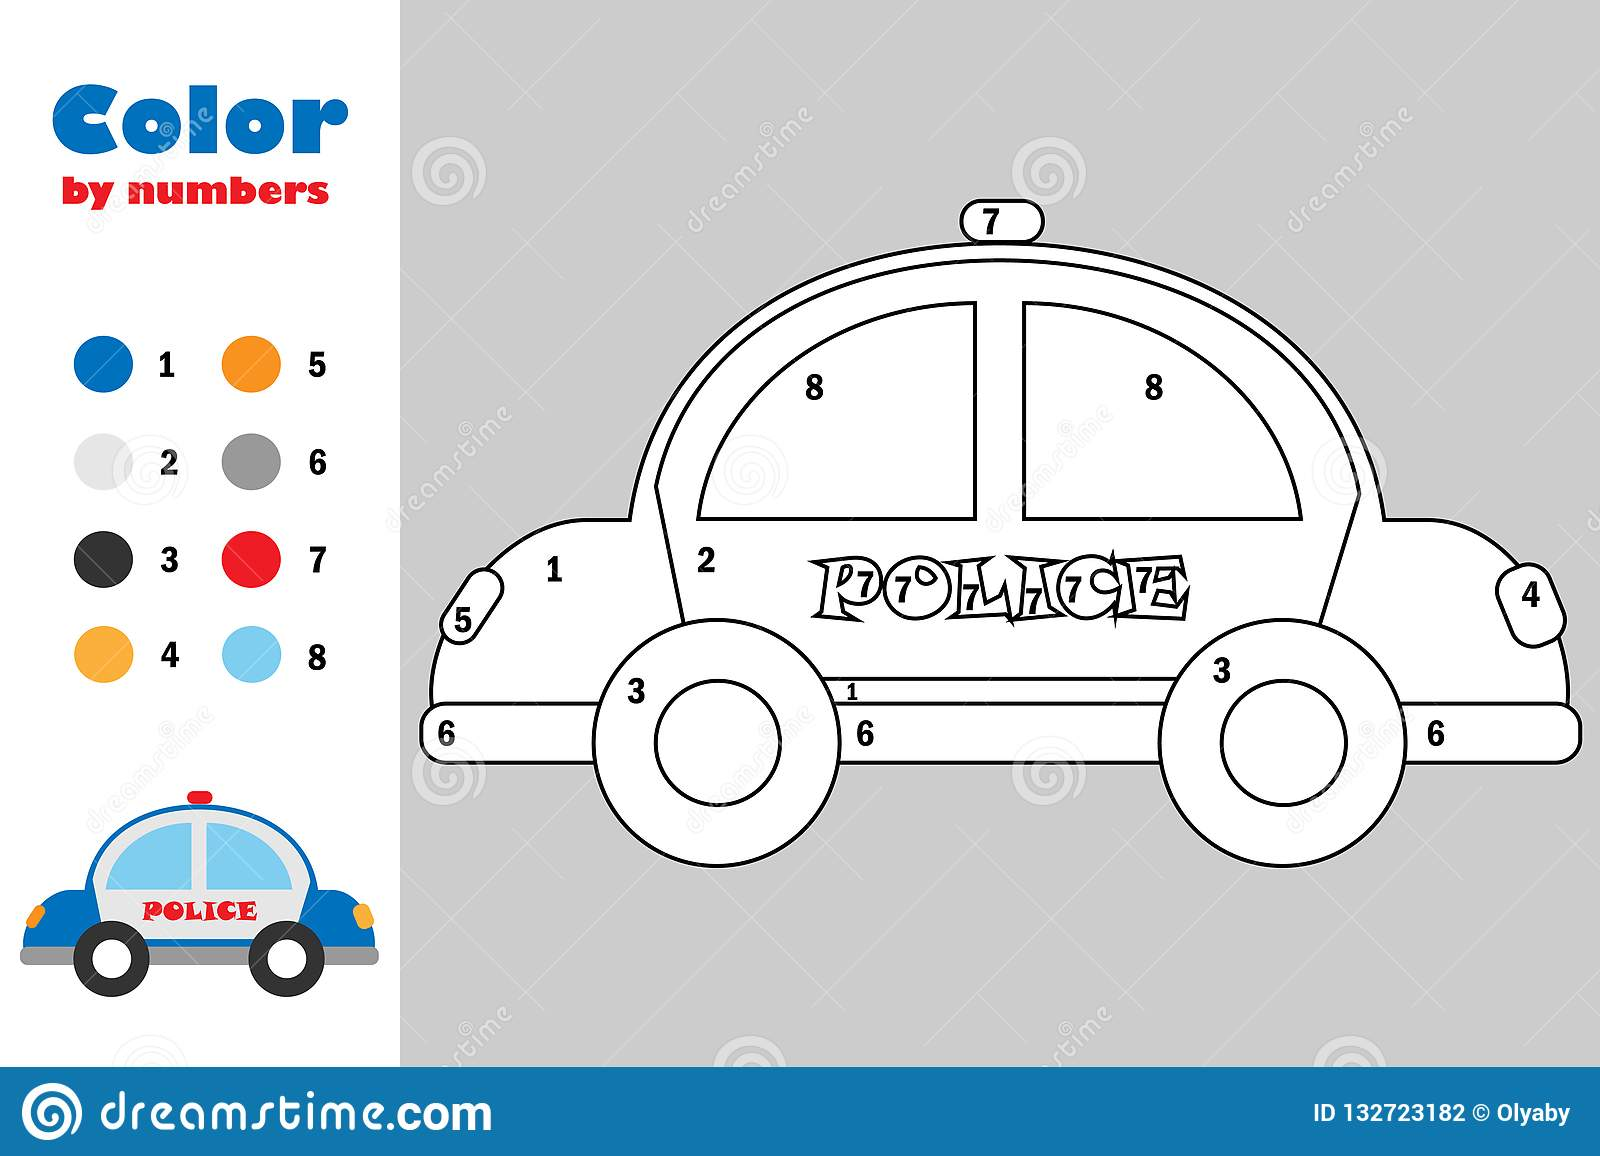 Police Car In Cartoon Style Color By Number Education Paper Game For The Development Of